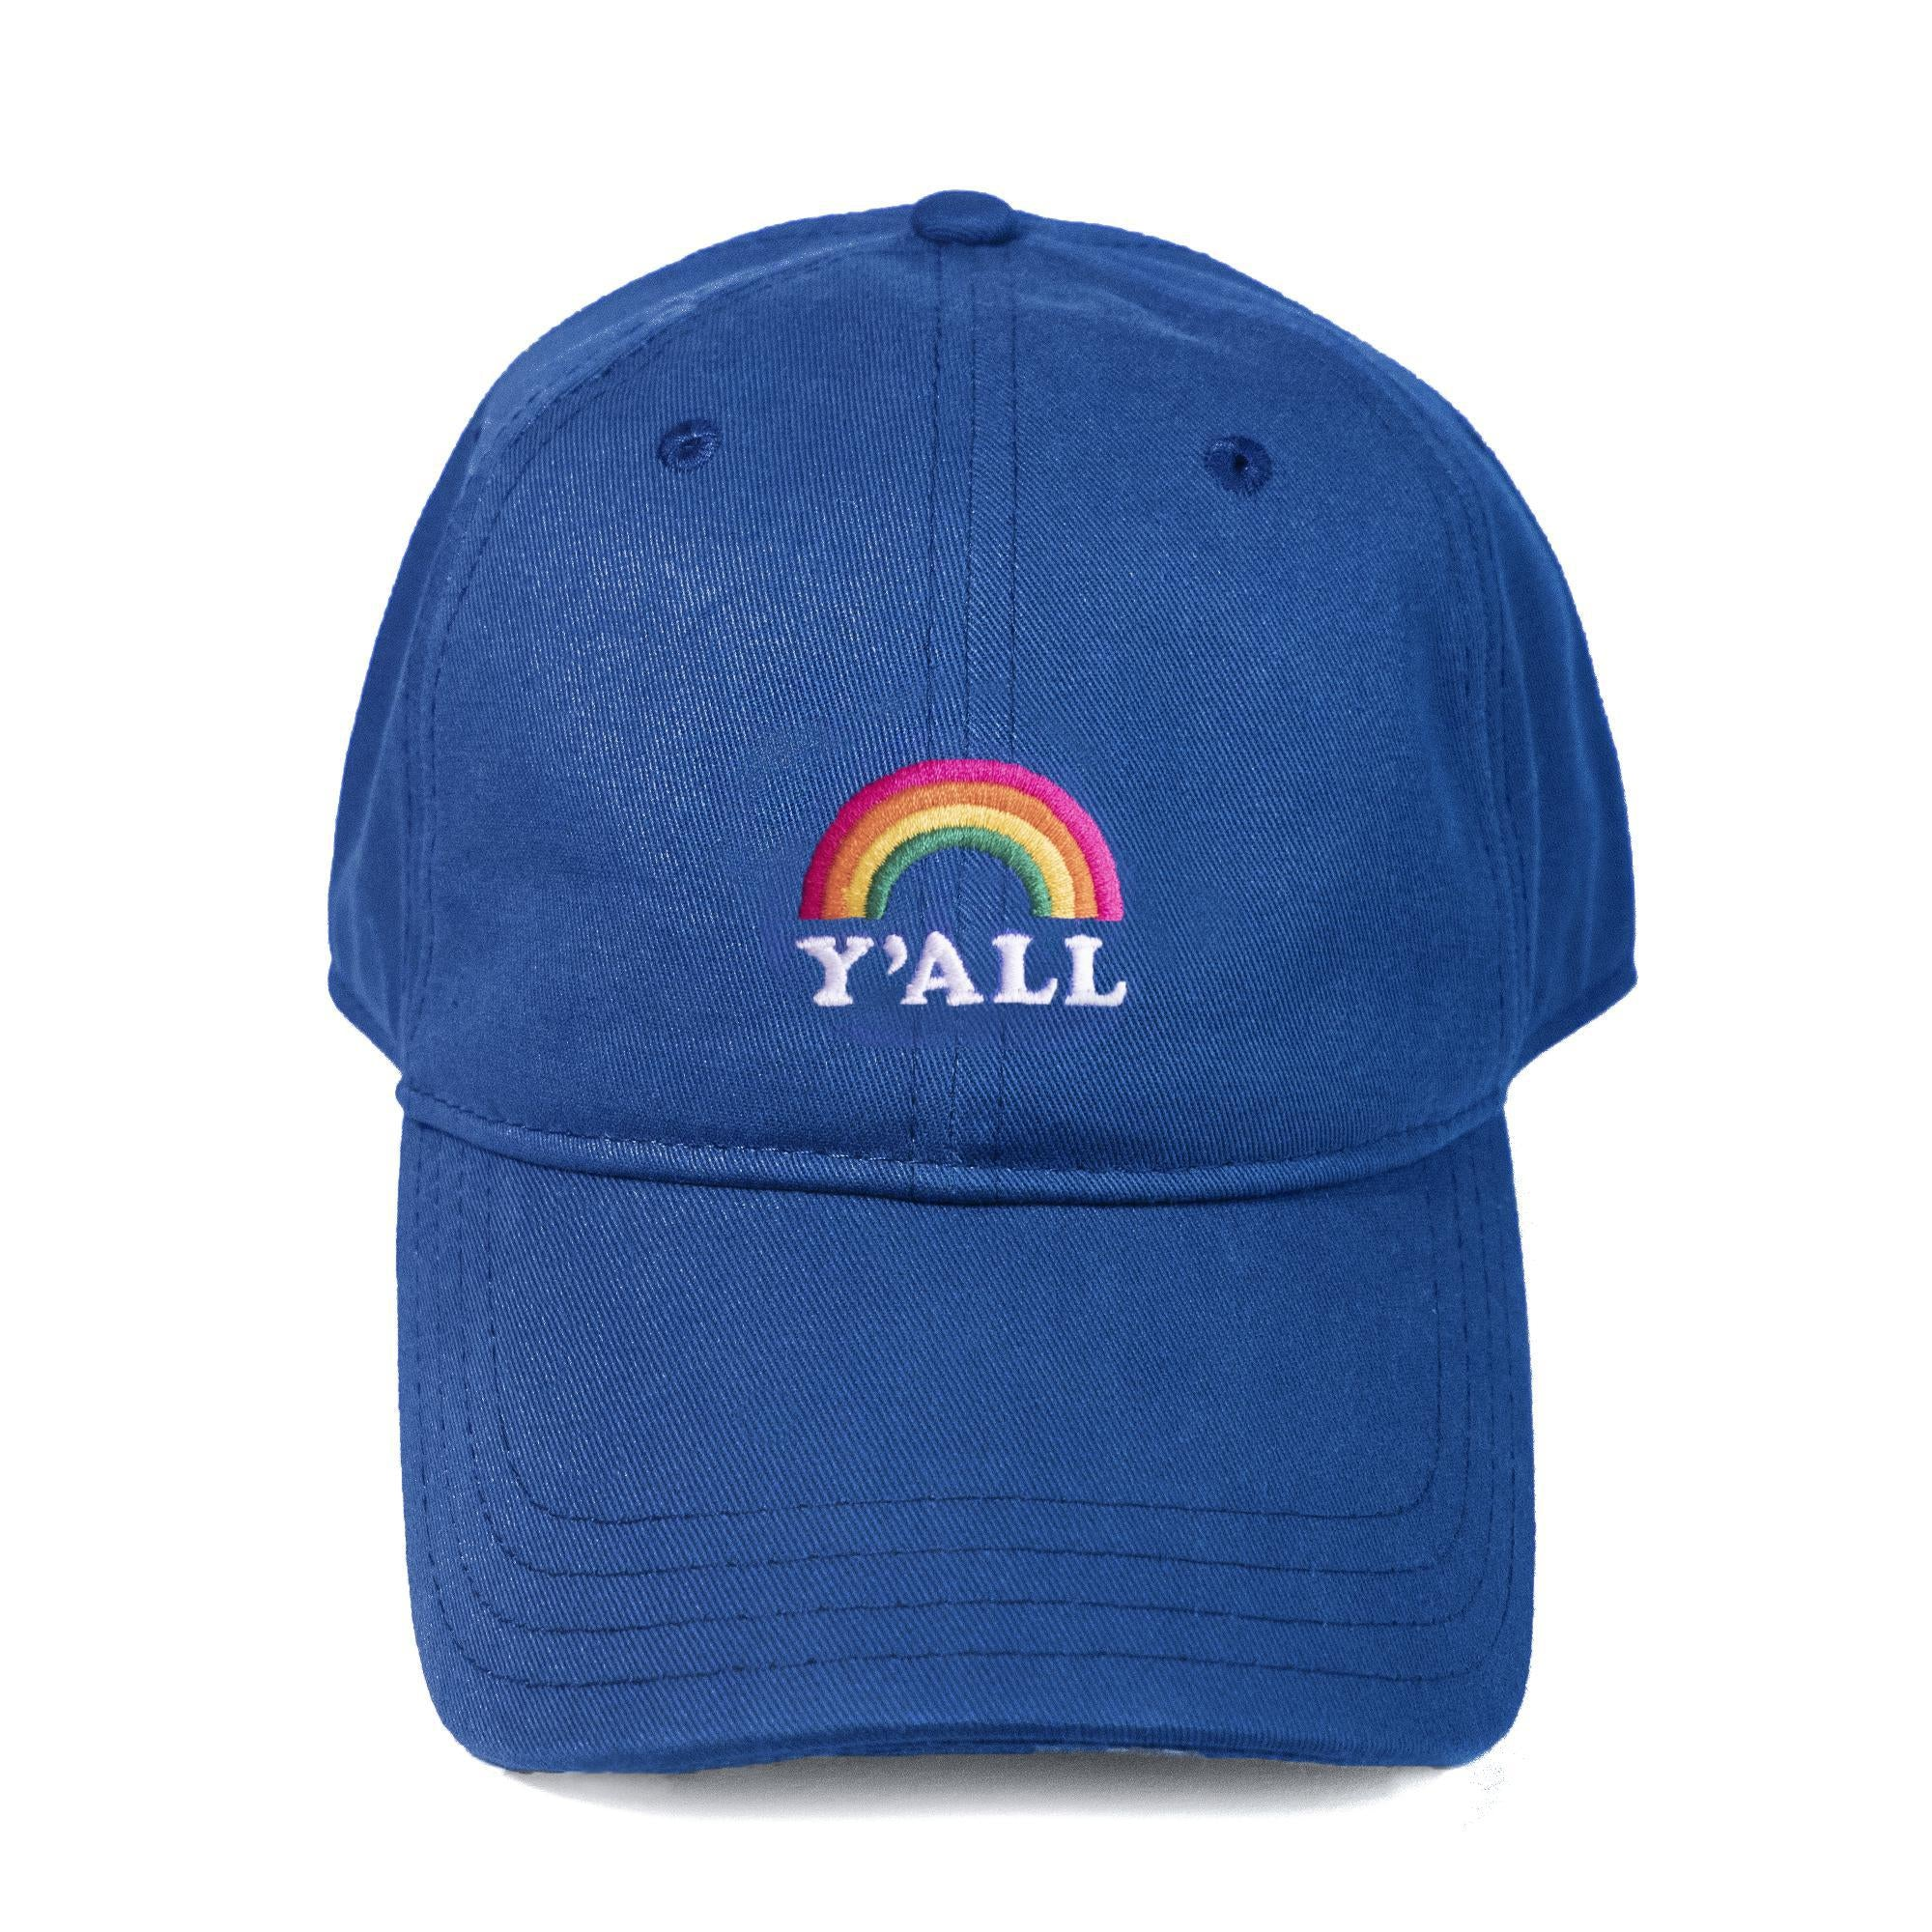 Y'all Rainbow Dad Hat-Hat-KY for KY Store